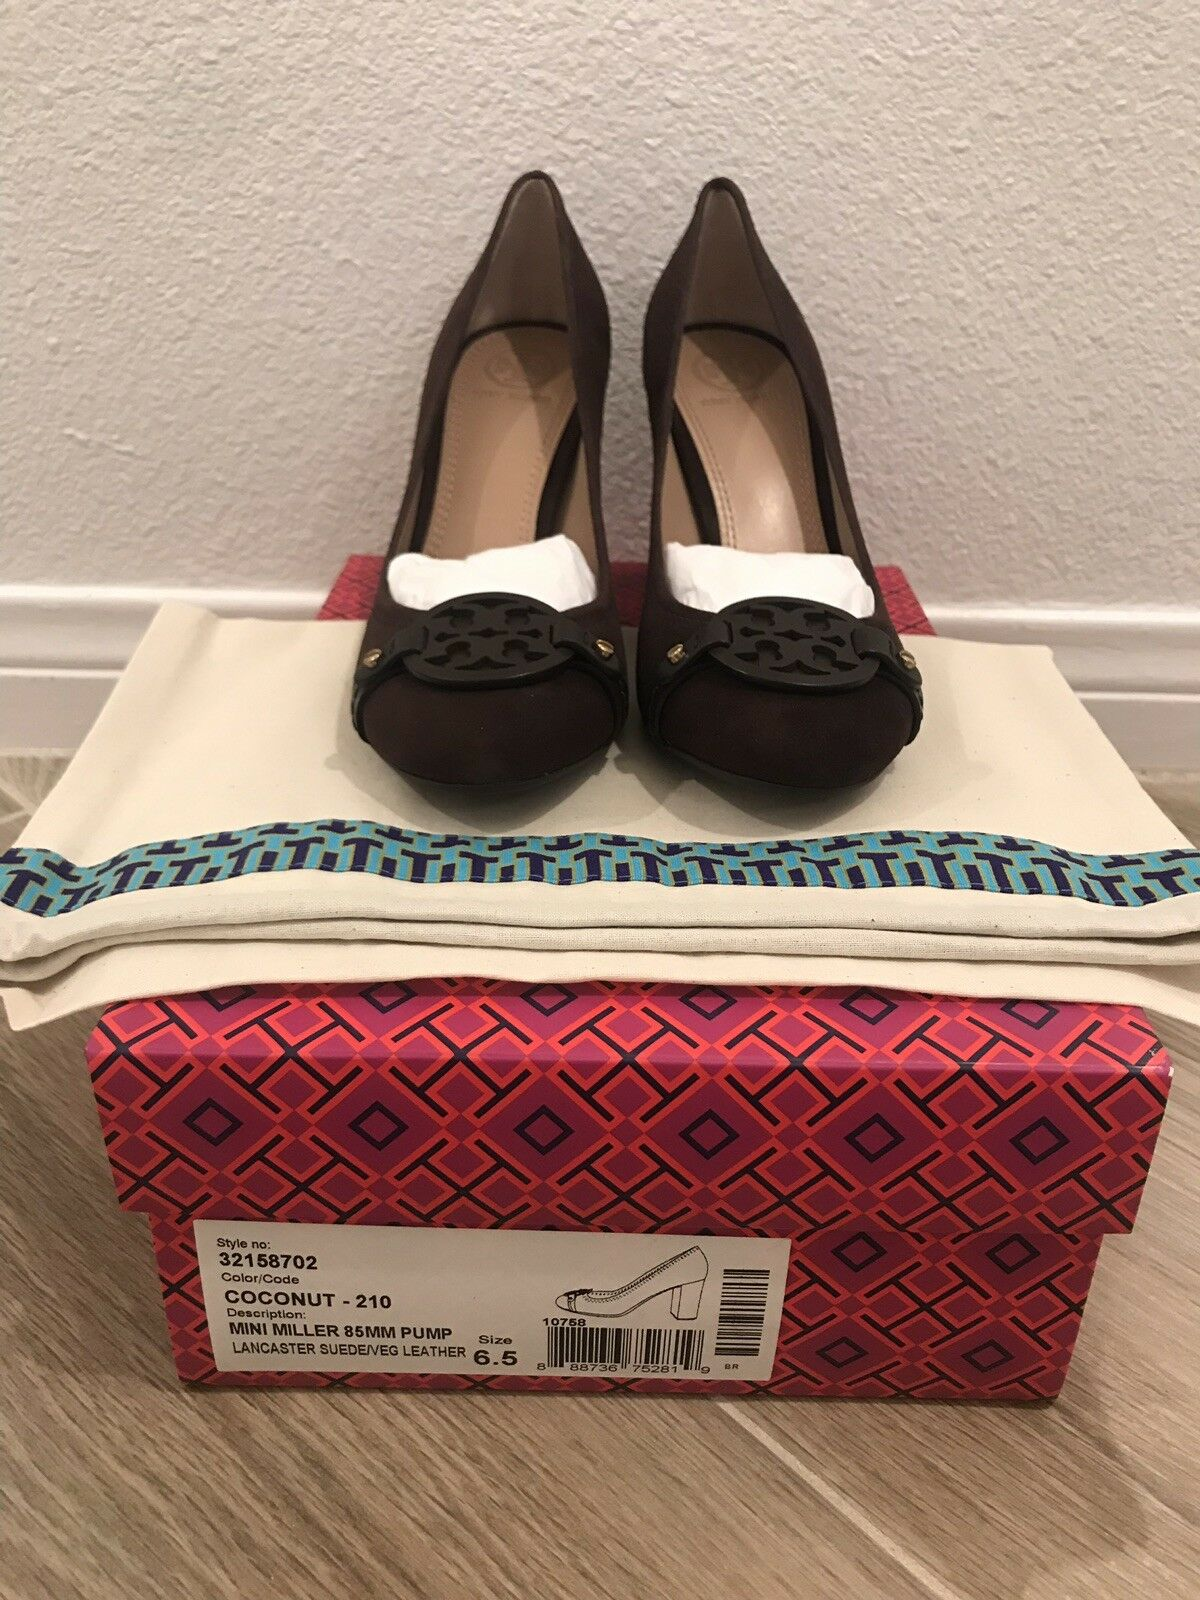 NEW Tory Burch Size 6.5 Brown Mini Miller 85mm Pump Lancaster Suede Leather